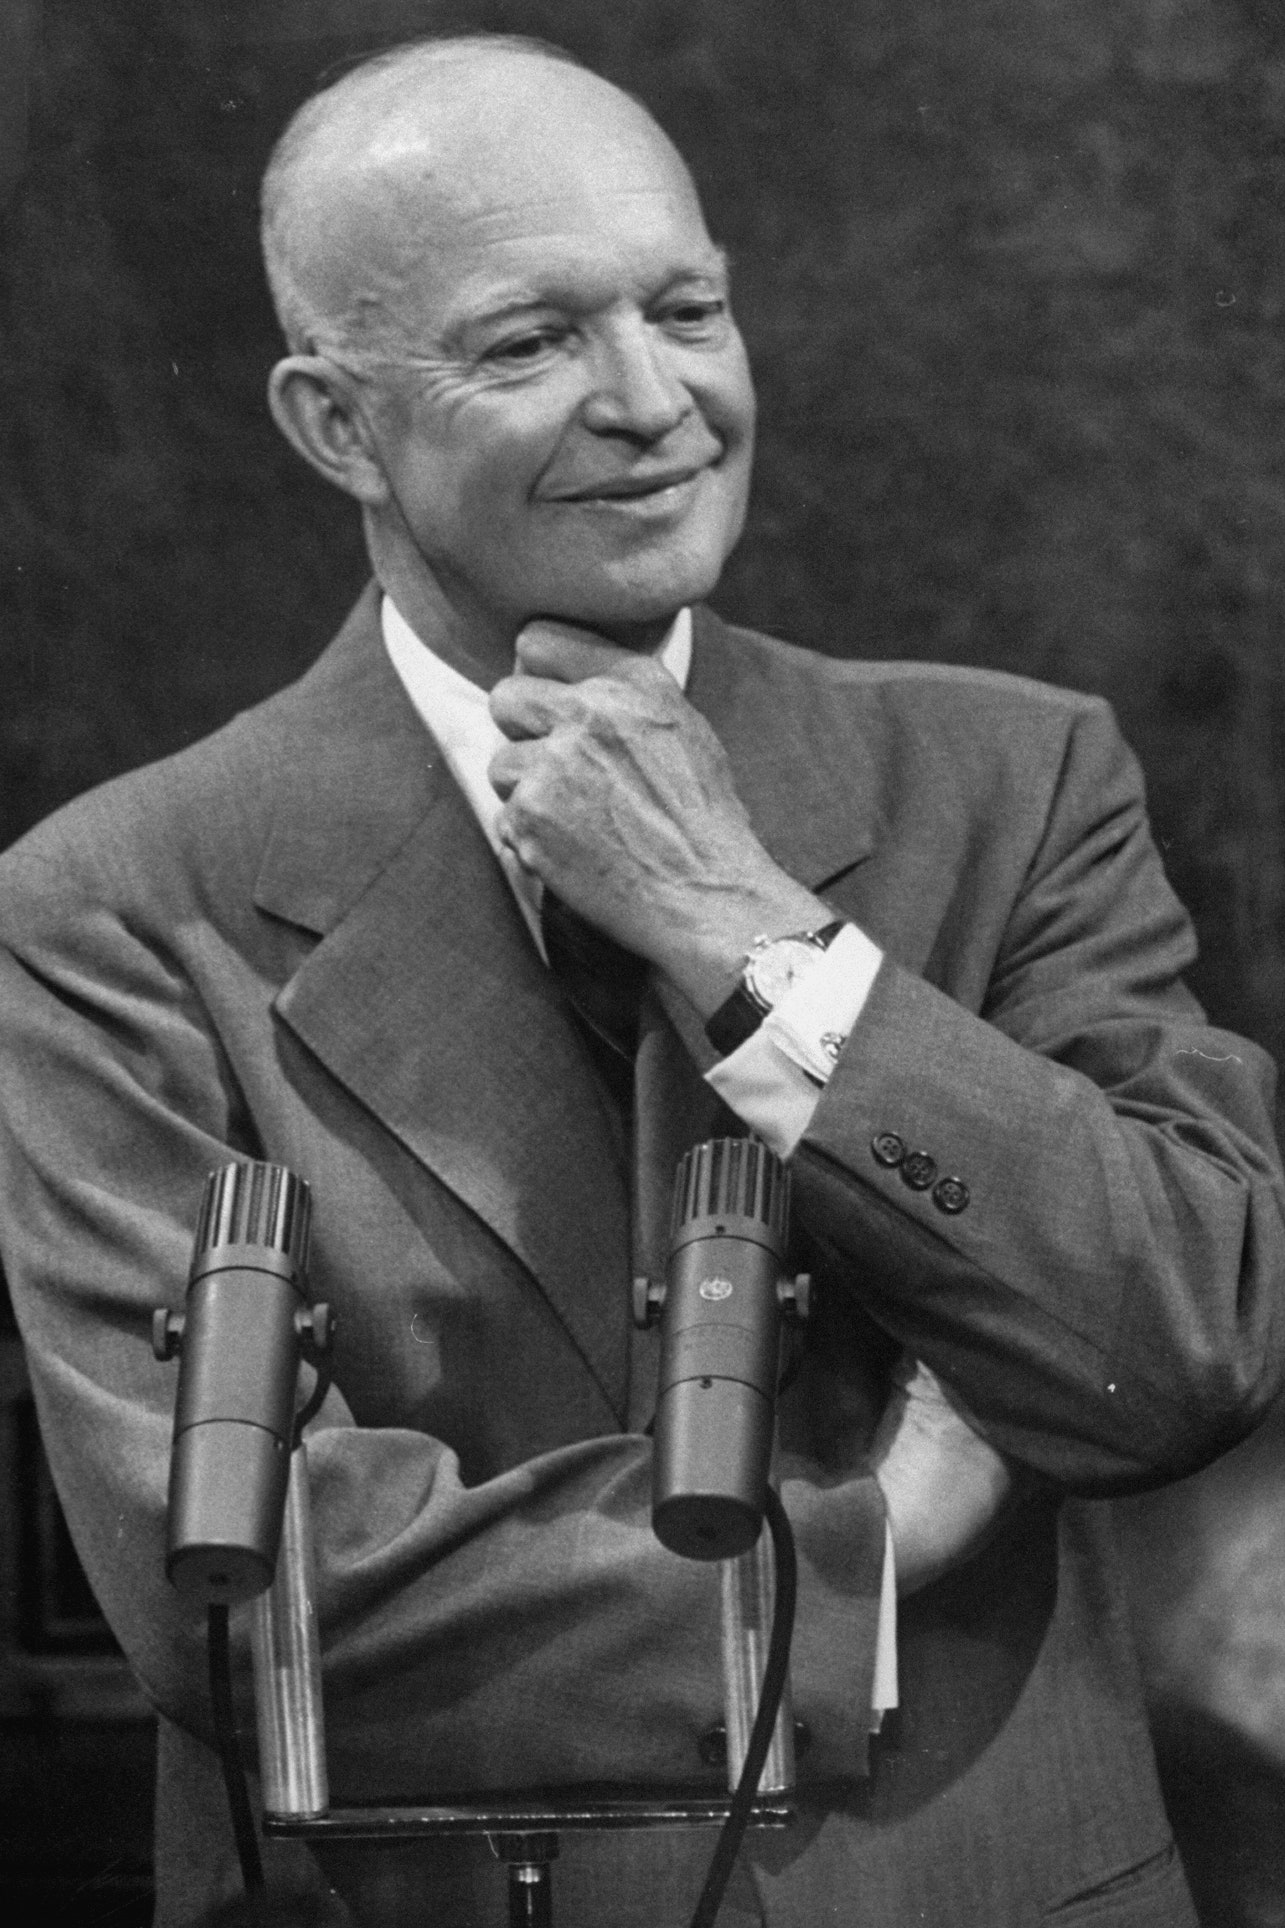 President Dwight D. Eisenhower at White House press room conference.